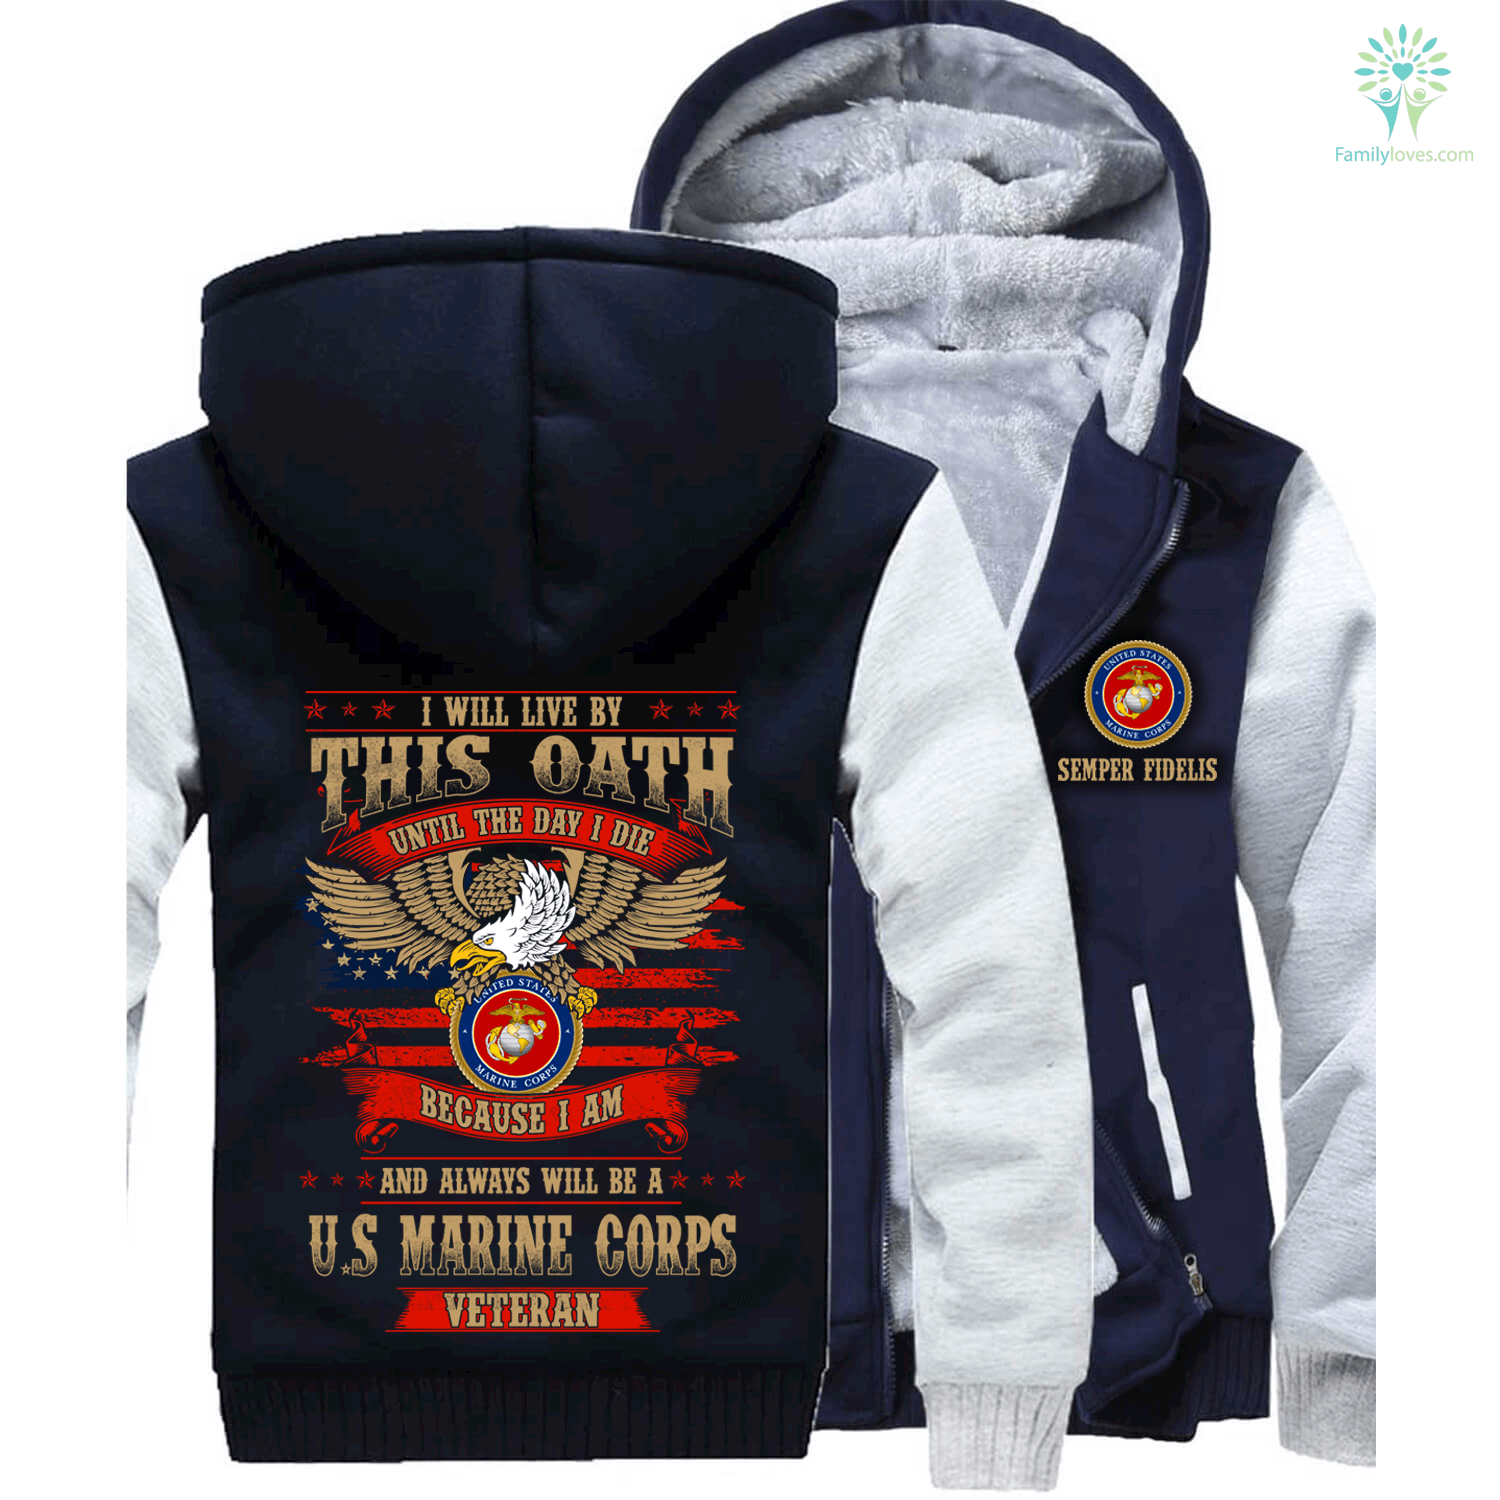 i-will-live_df3e0809-f00d-5faa-713d-fe90d1e07075 I will live by this oath until the day I die because I am and always will be a U.S marine corps veteran hoodie  %tag